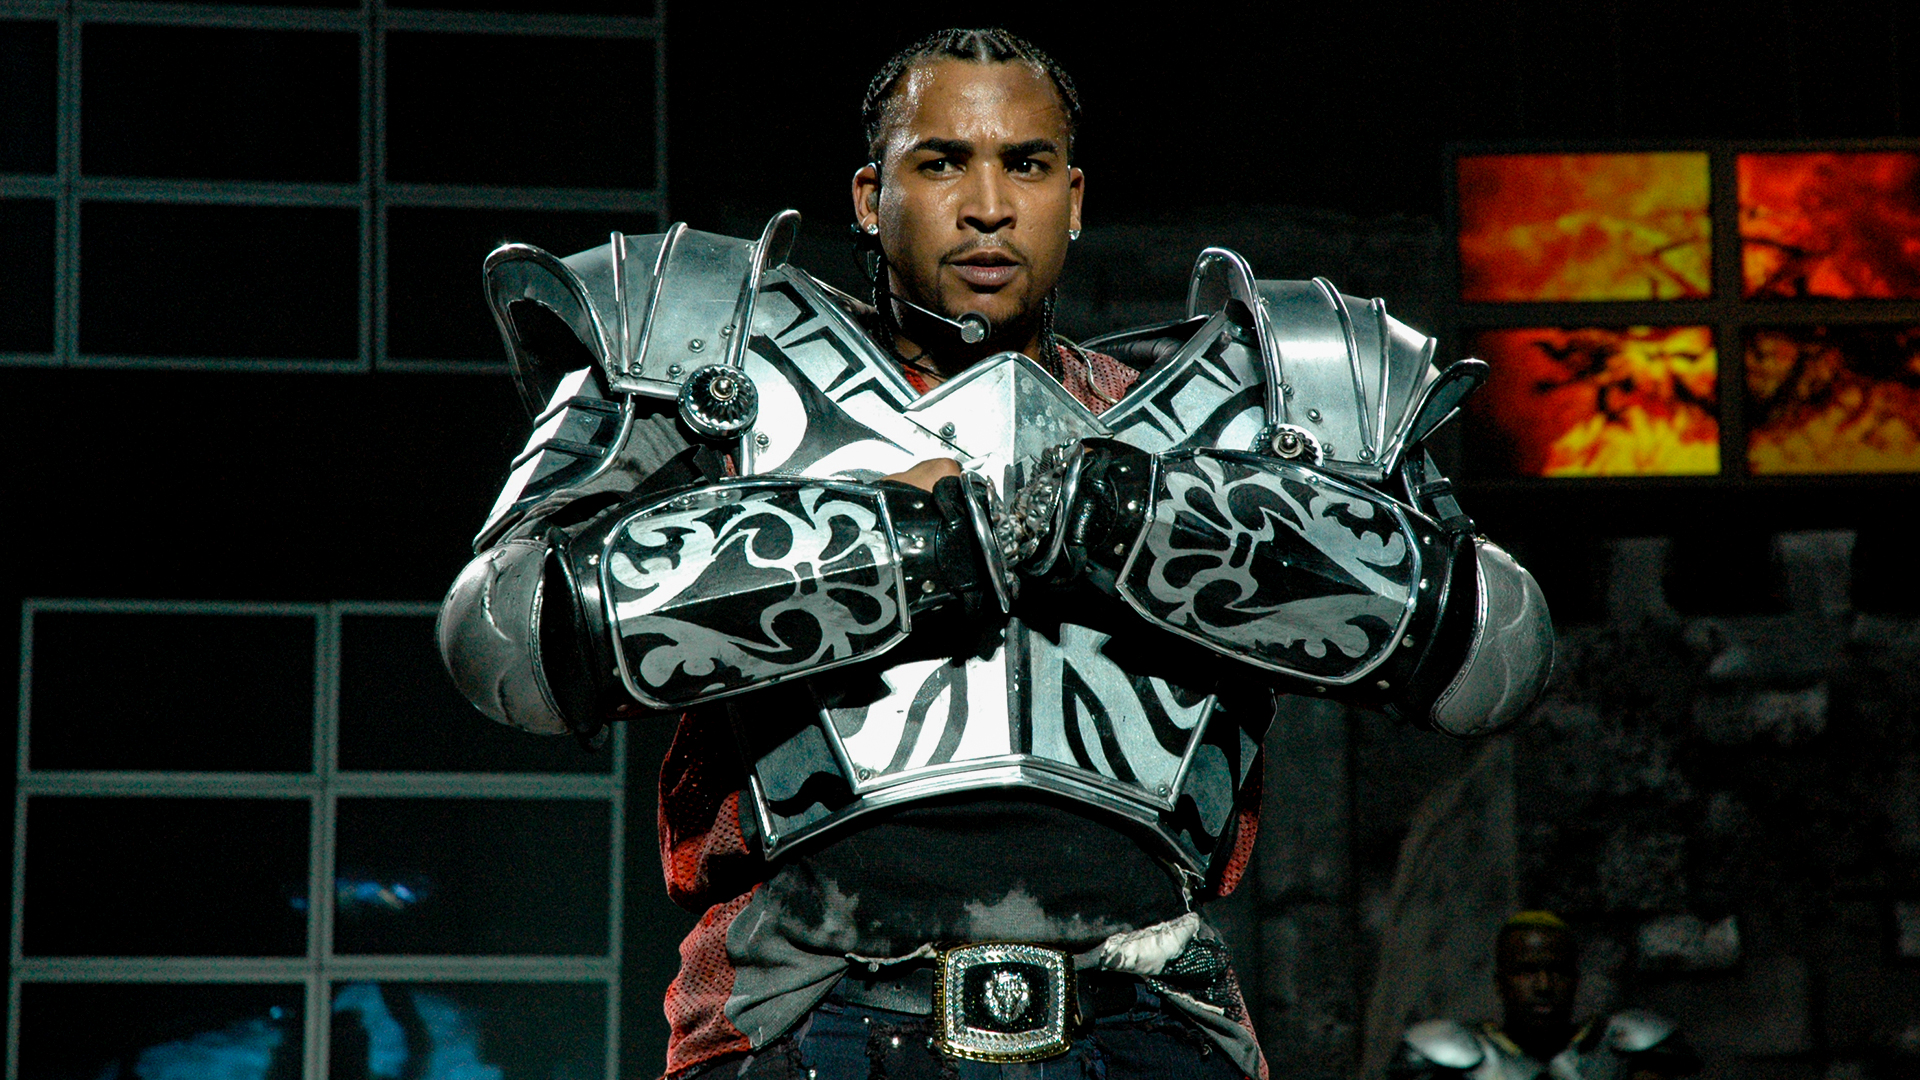 DON OMAR KING OF KINGS COLISEO DE PUERTO RICO 2007